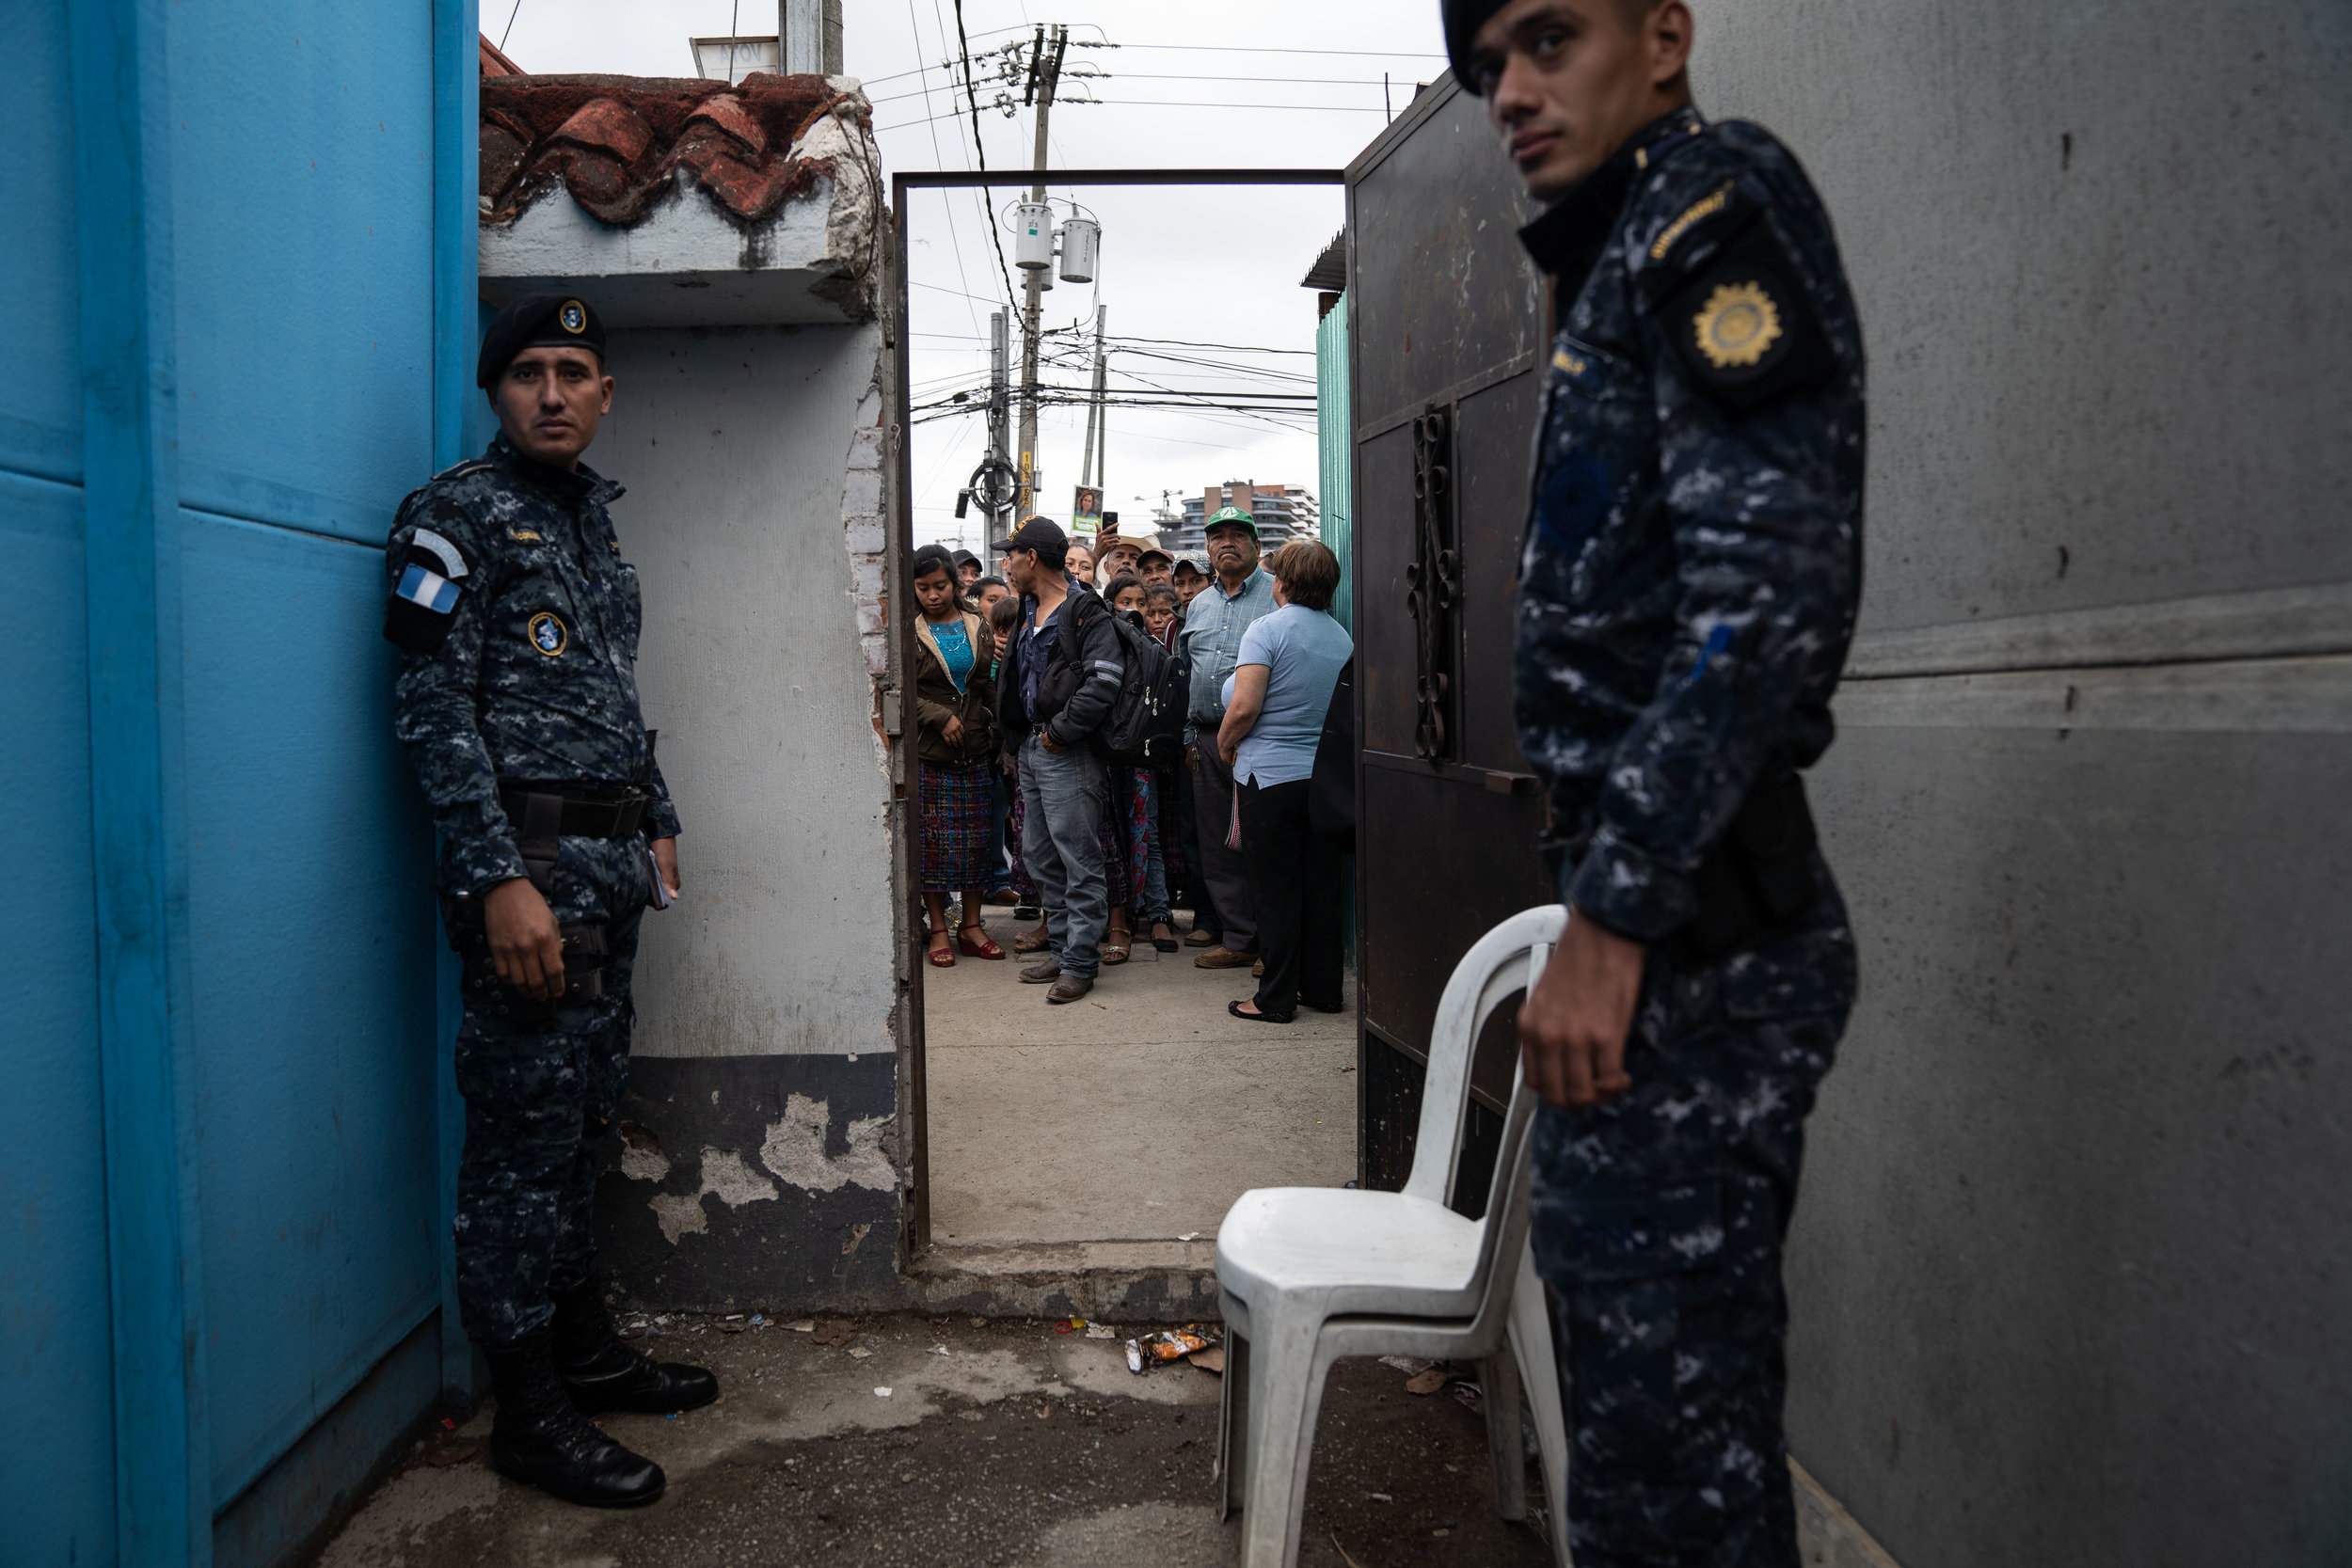 Family members and loved ones wait for Guatemalan deportees to exit a Repatriation Center in Guatemala City in May, 2019.